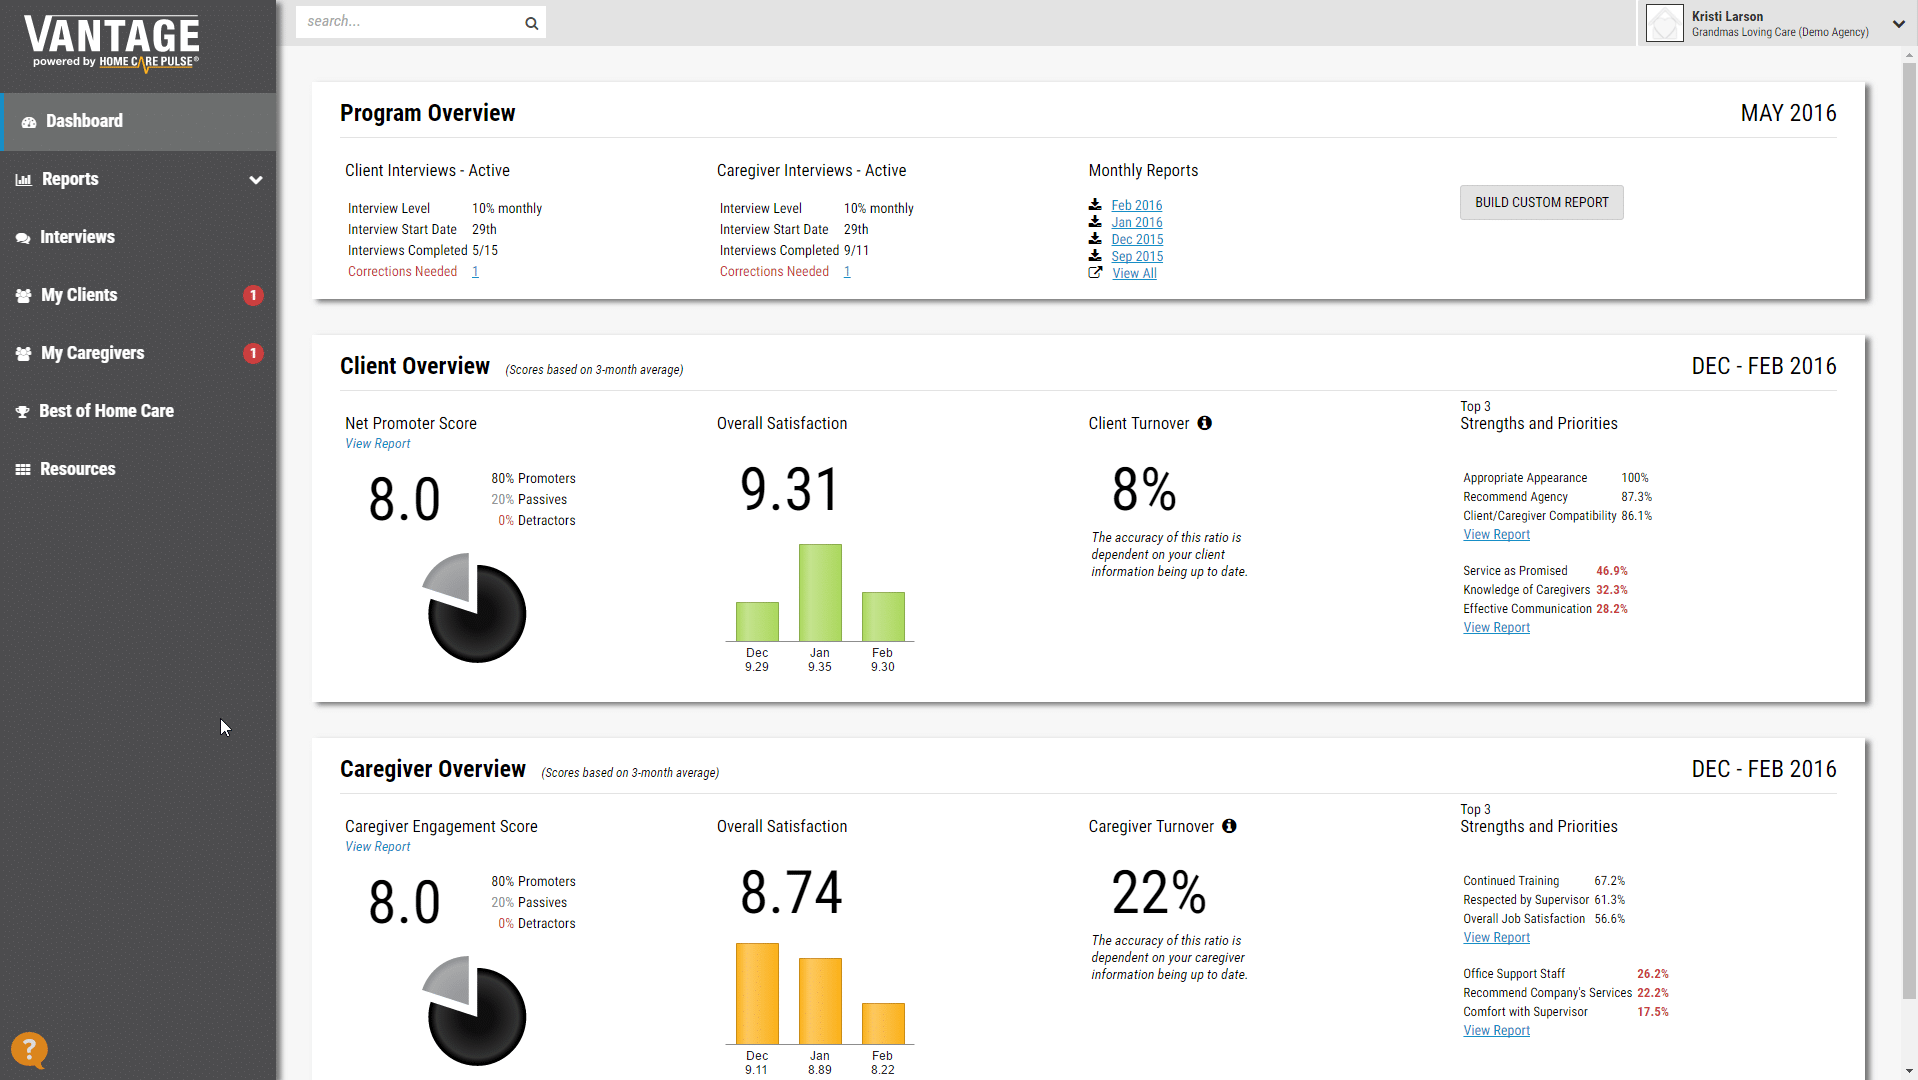 updated VANTAGE home page